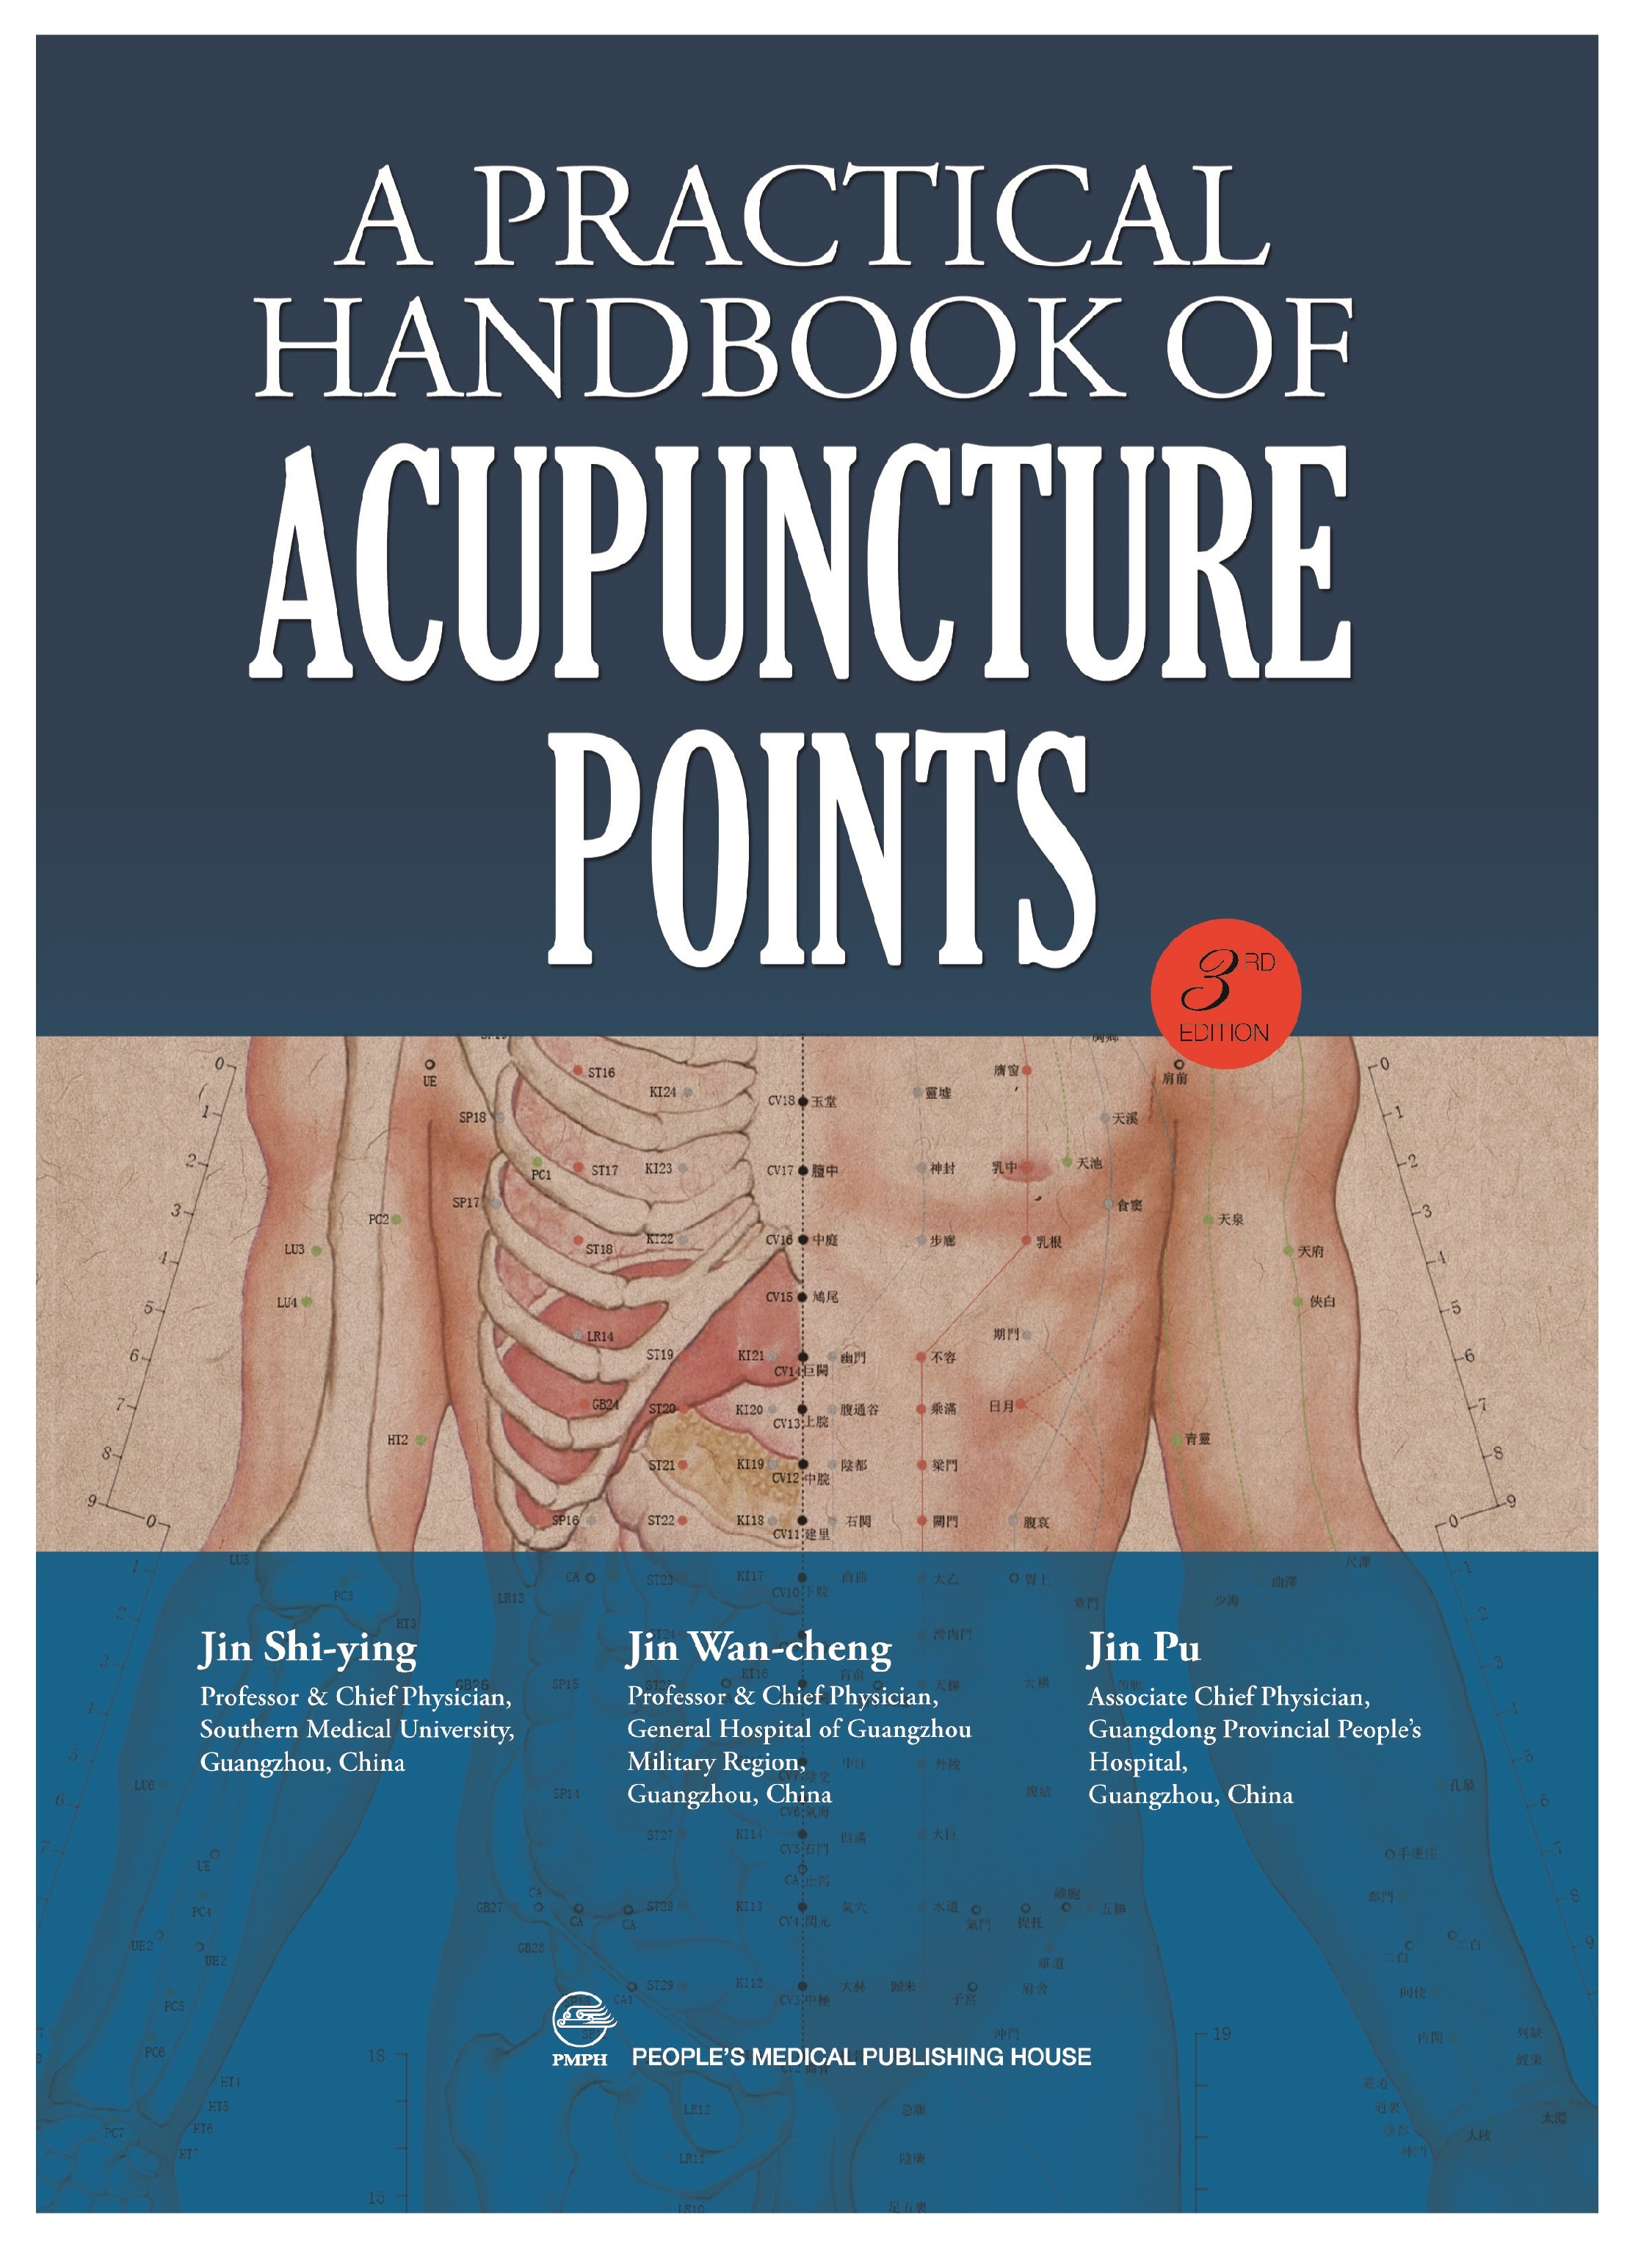 Practical Handbook of Acupuncture Points